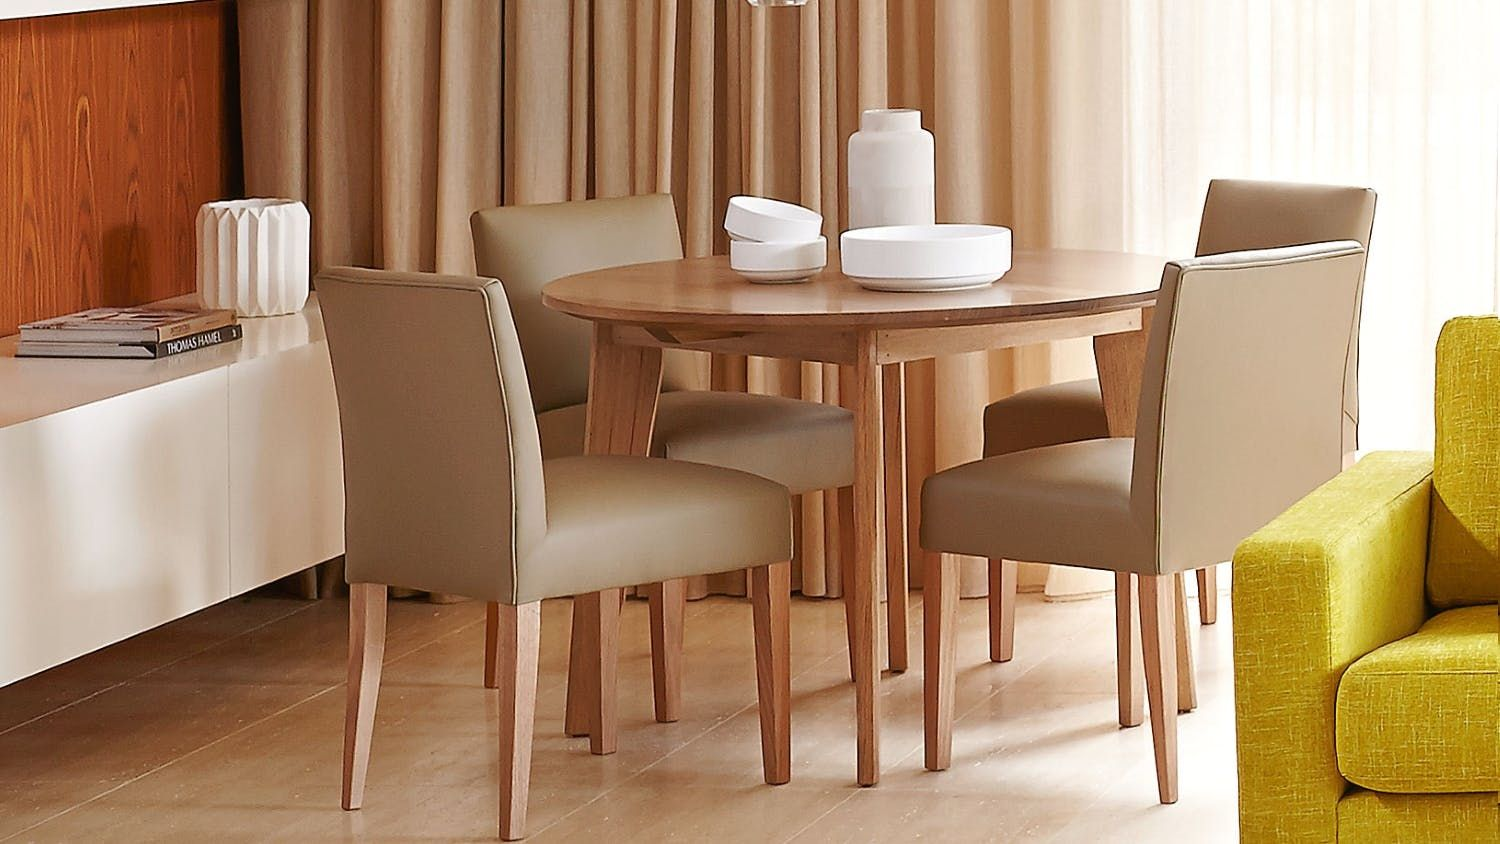 Elvie Round Dining Table  Round Dining Table Captivating Circular Dining Room Table Inspiration